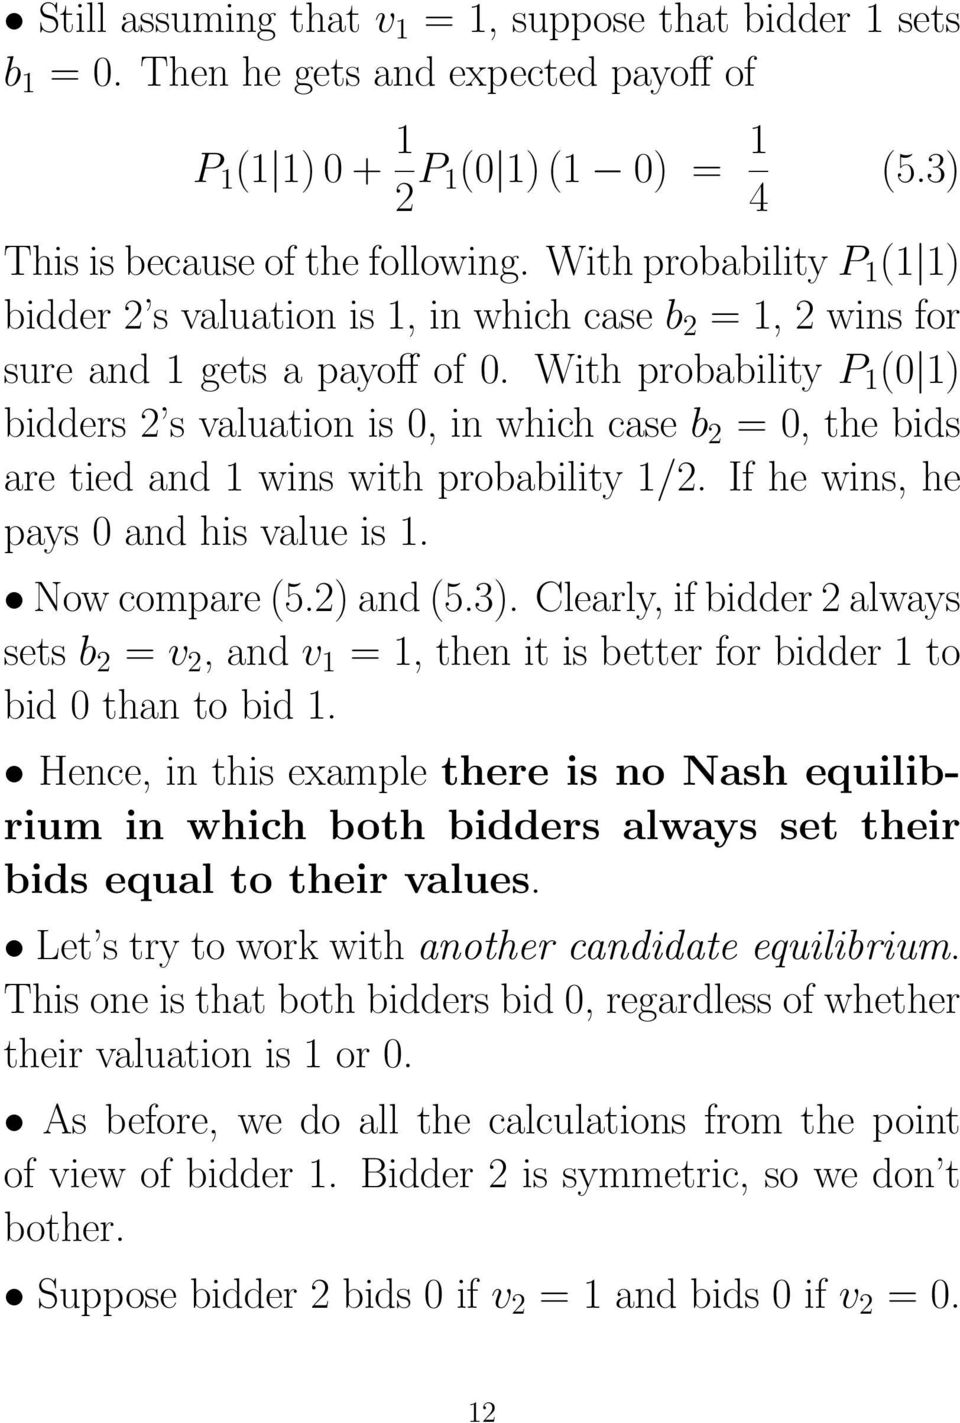 With probability P 1 (0 1) bidders 2 s valuation is 0, in which case b 2 = 0, the bids are tied and 1 wins with probability 1/2. If he wins, he pays 0 and his value is 1. Now compare (5.2) and (5.3).